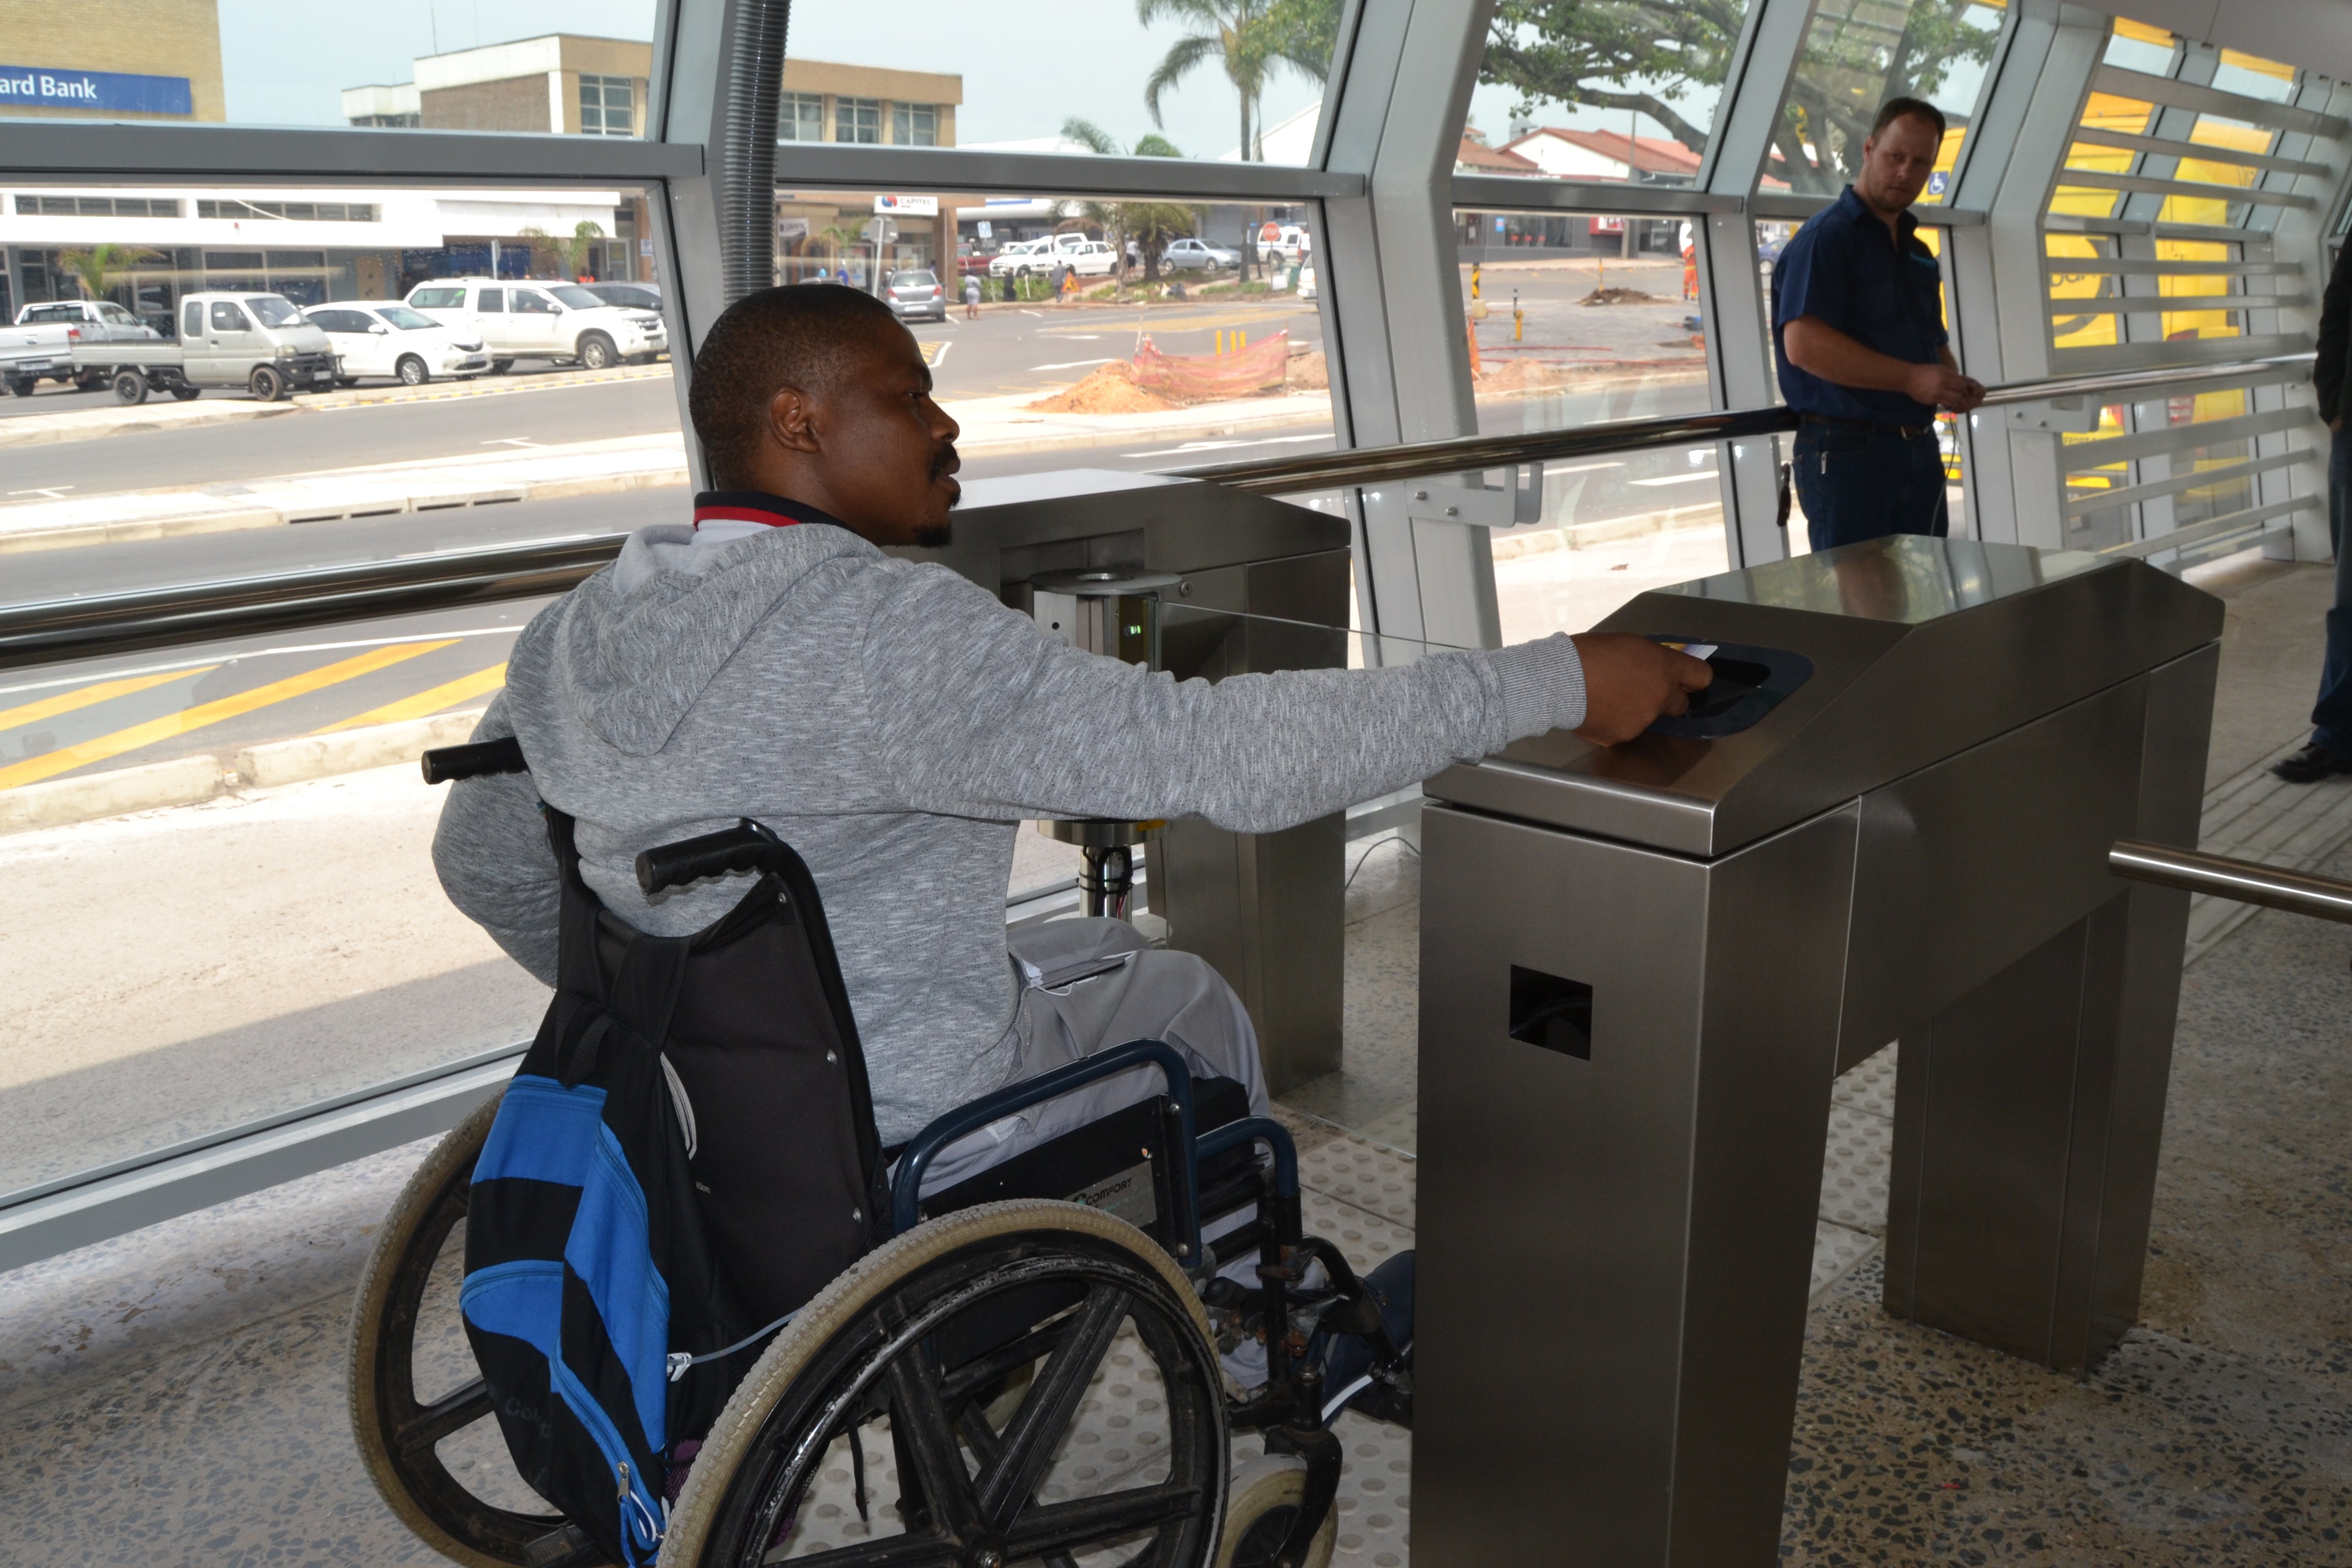 Musa Ngcobo, who works at the Transport Management Centre at the eThekwini Transport Authority, helps to test the control access points for those in wheelchairs at the GO!Durban station at Regent Street, New Germany.